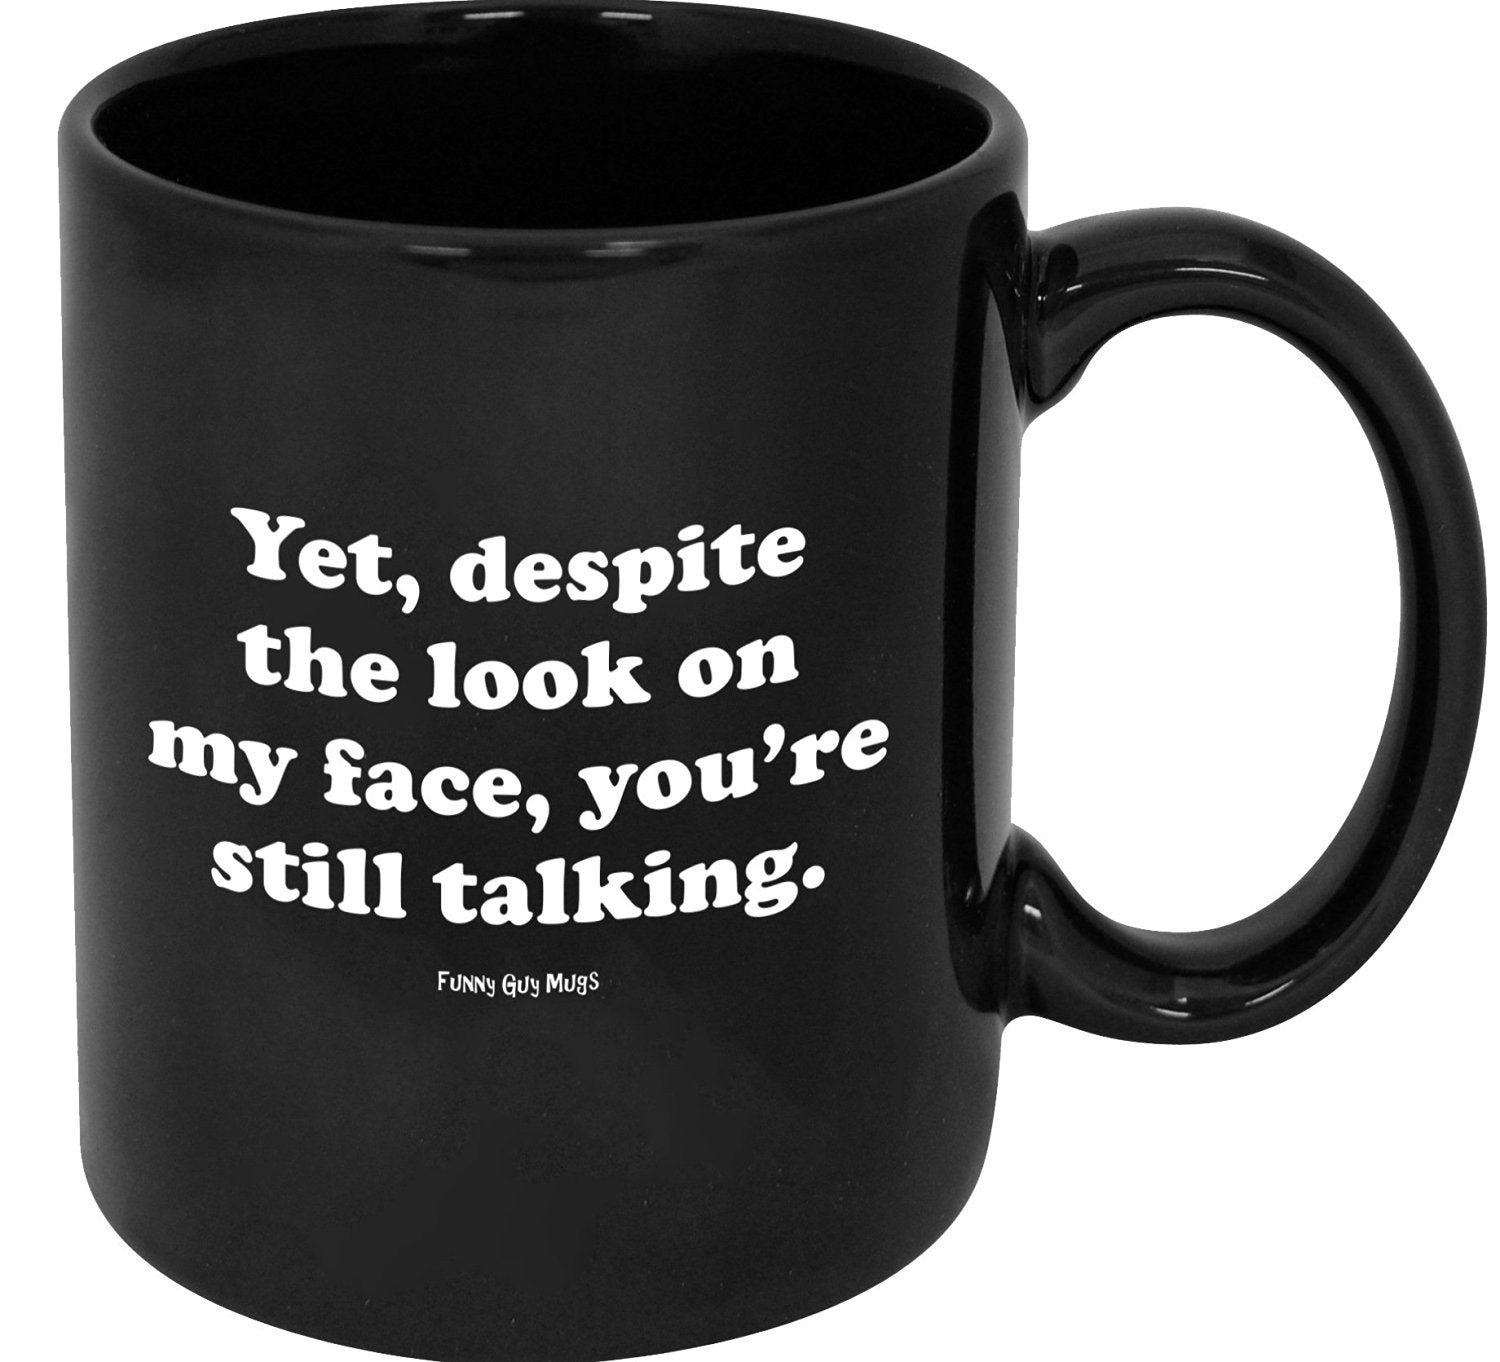 Despite The Look On My Face You're Still Talking Coffee Mug Cup - Boho Bohemian Decor